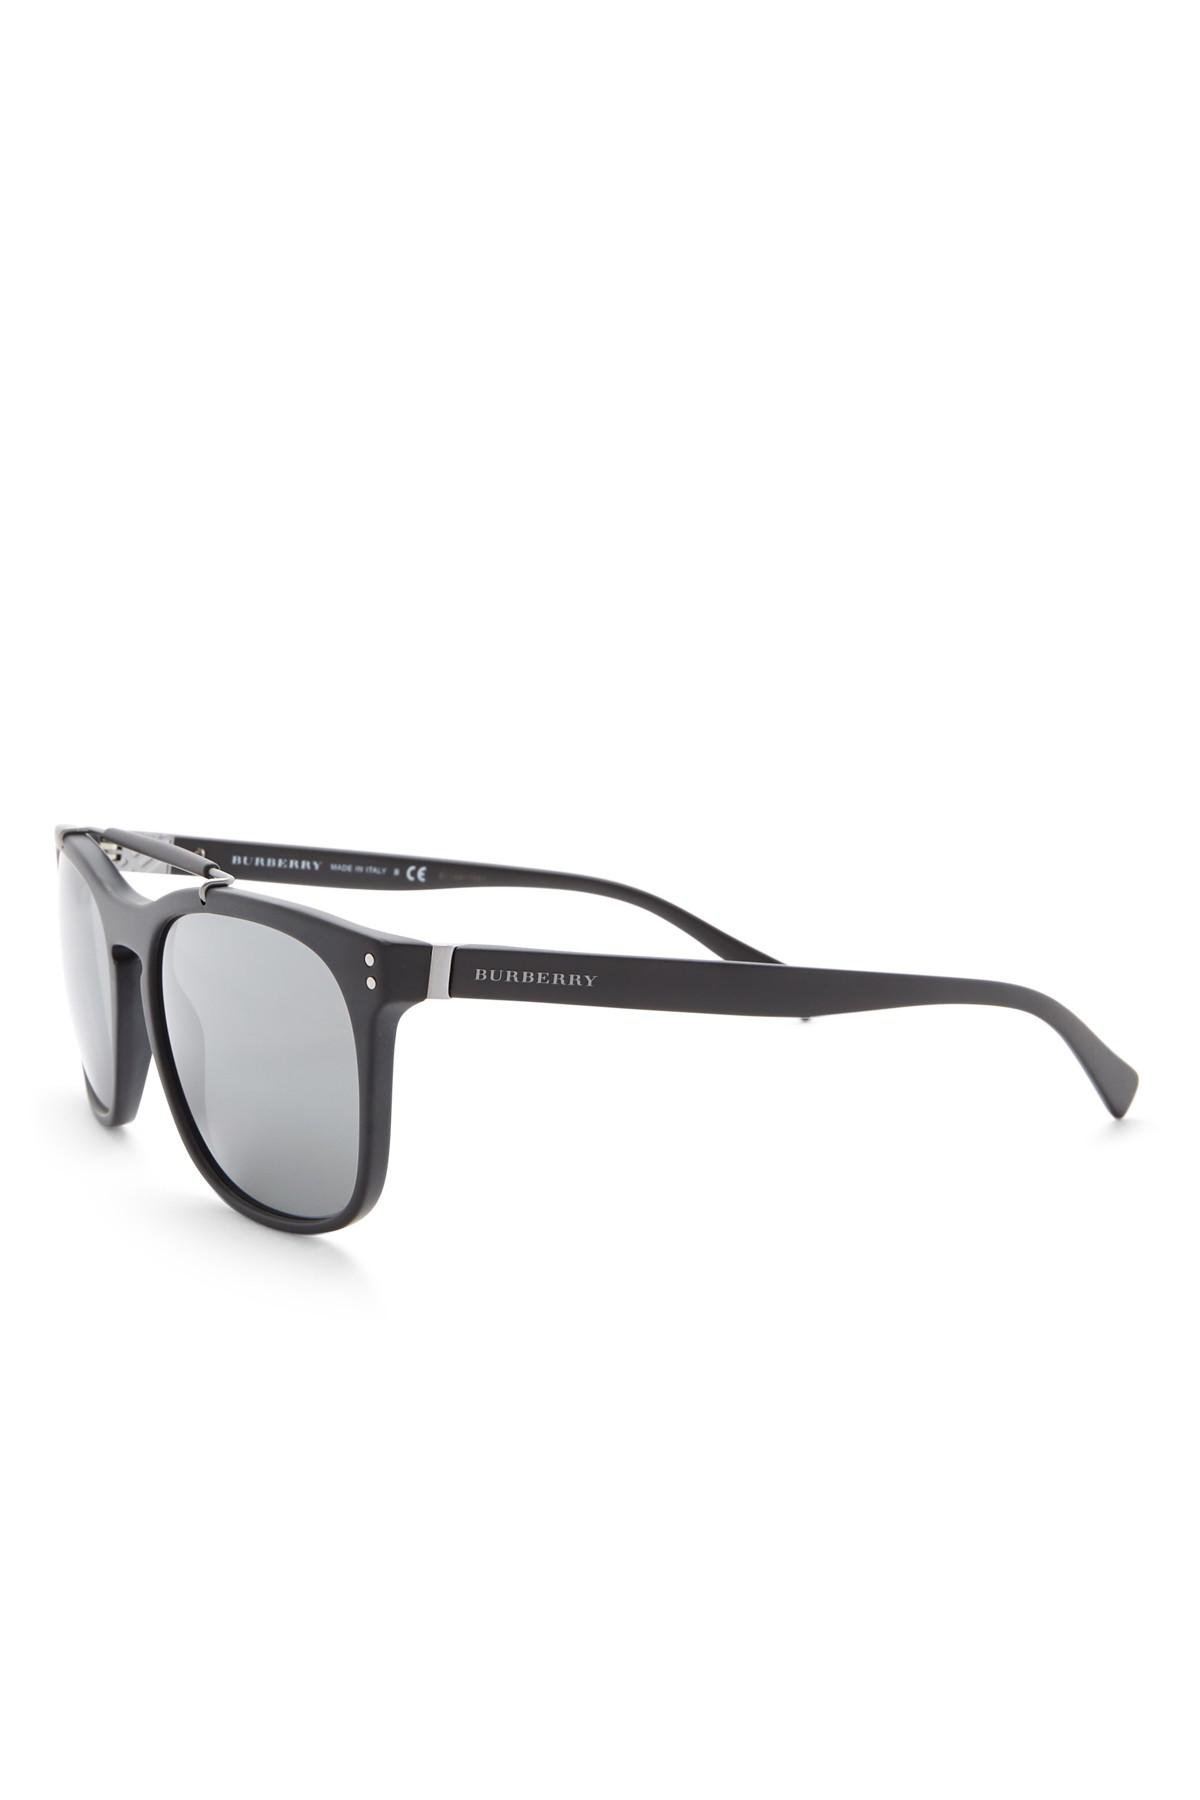 6e1d376fd73 Lyst - Burberry Men s Tailoring Mr. Sunglasses in Black for Men